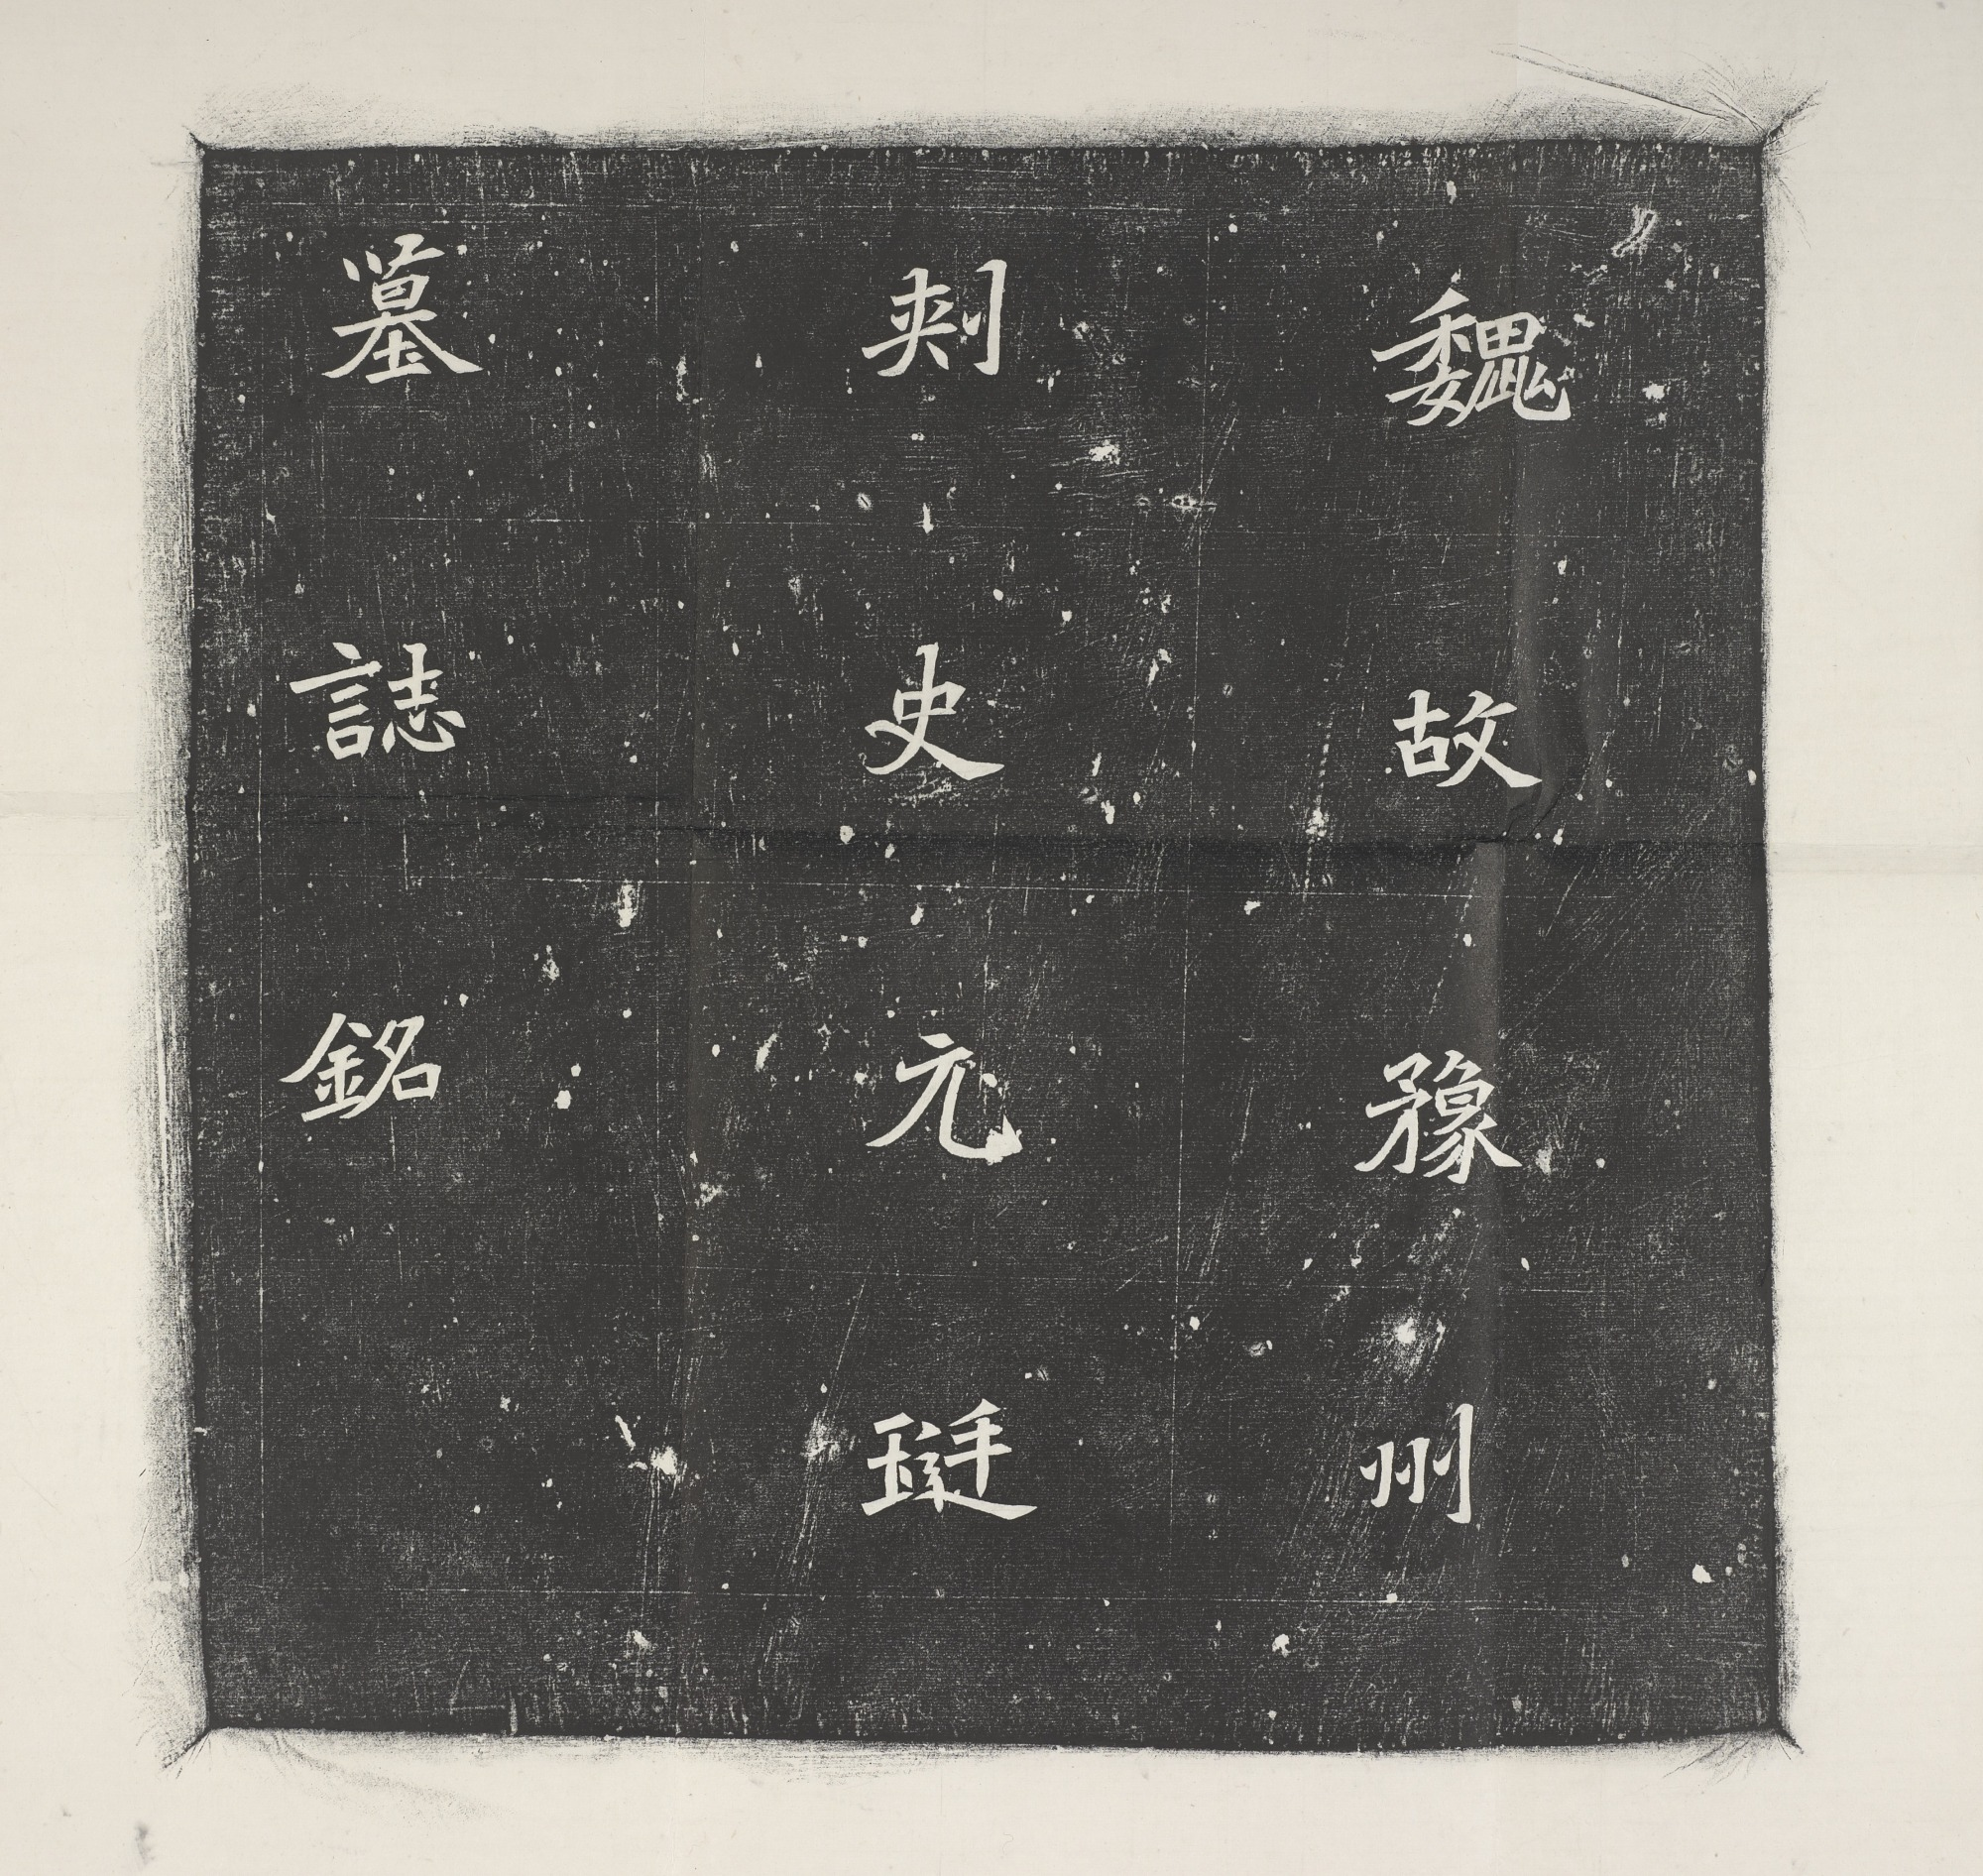 Epitaph of Yuan Ting in standard script